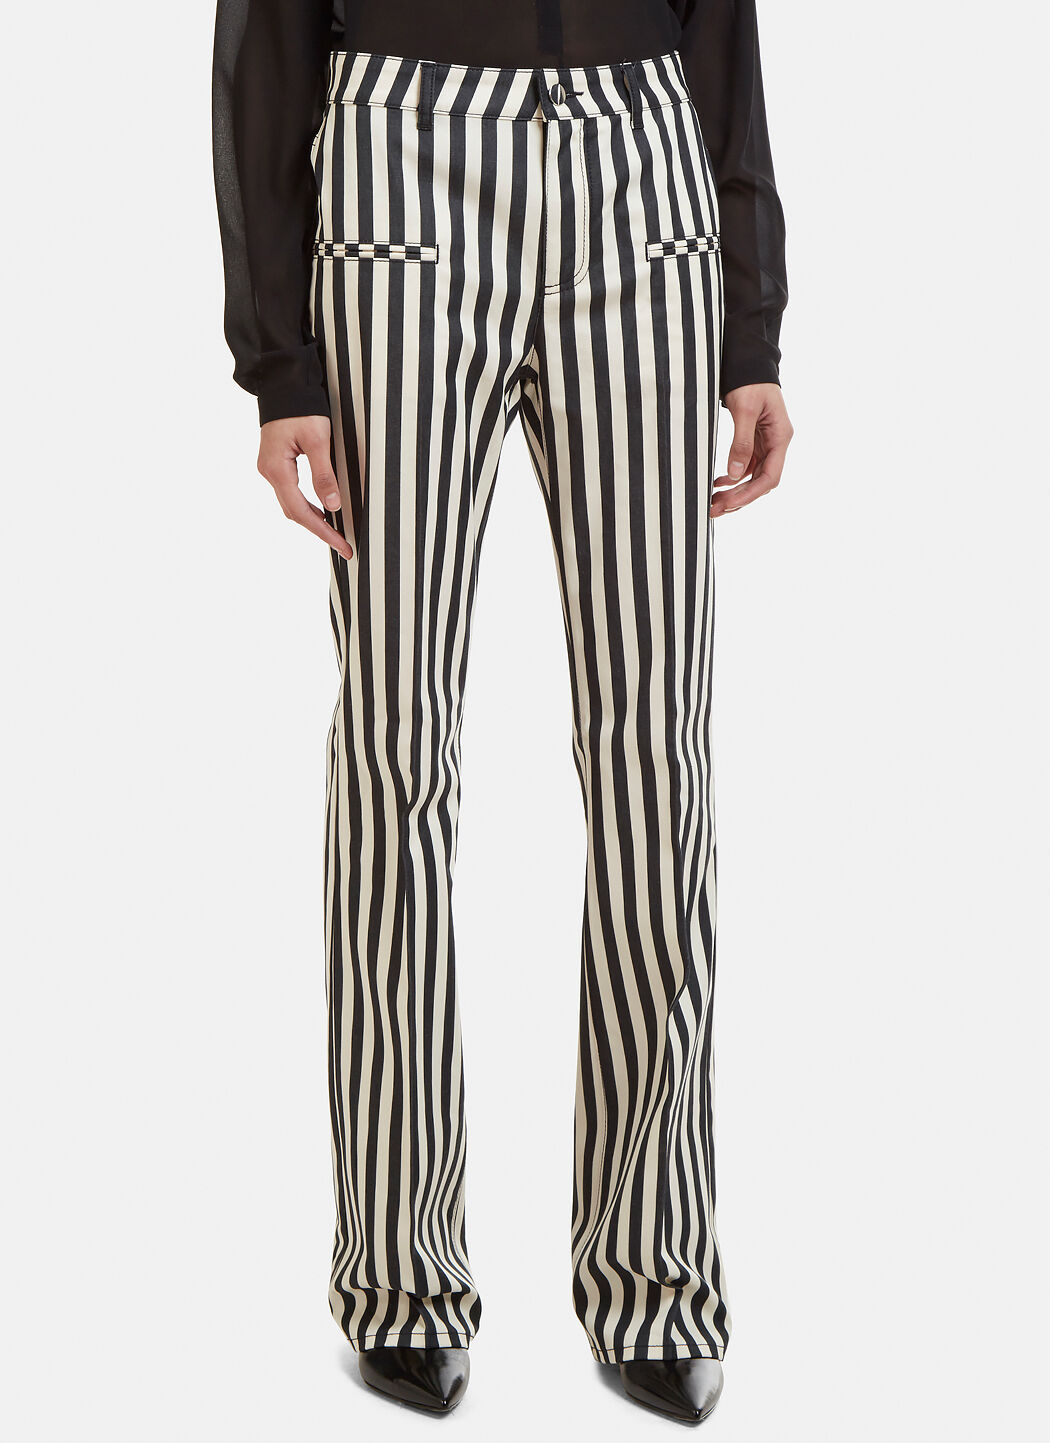 Serge Striped Cotton-blend Flared Pants - Black Altuzarra Free Shipping The Cheapest Free Shipping Affordable Latest Collections Online Clearance Visit New QeTZp